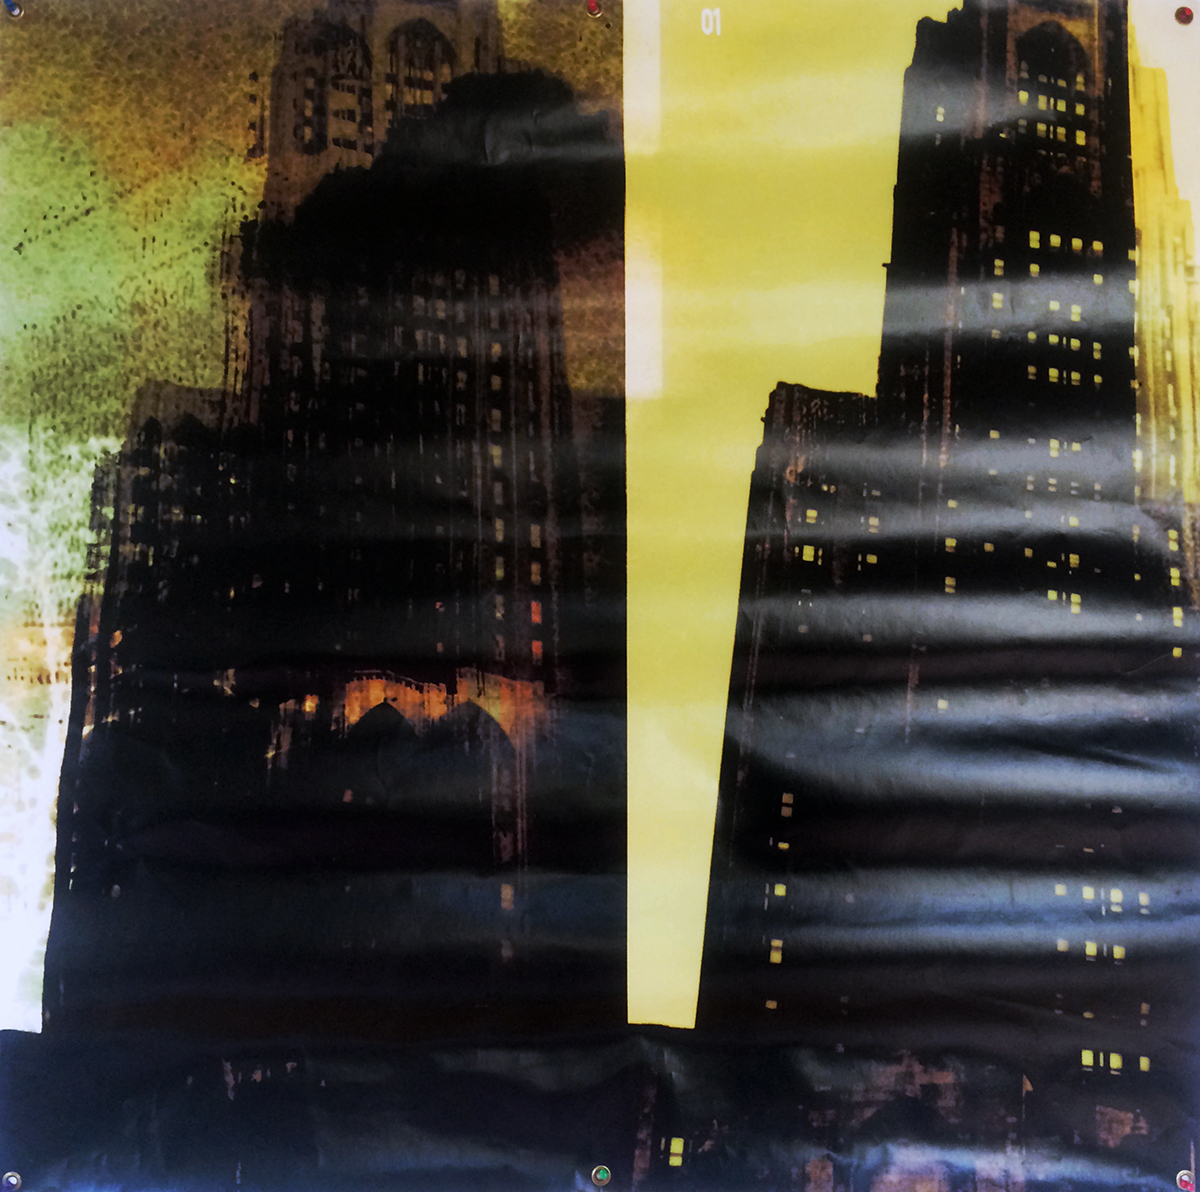 """Two Towers"" Digital Print on Poly Material, Grommets 48"" x 48"" 2001 $2800  The photo data for ""Two Towers"" is a circa 1984 pic of the Cathedral of Learning in Pittsburgh. This image is post-9/11 and the reference is direct, even if the actual chronology is blurry. ""Two Towers"" was originally exhibited at Polifilo (Nashville), in Culture01. *The wrinkles in the print are easily remedied."